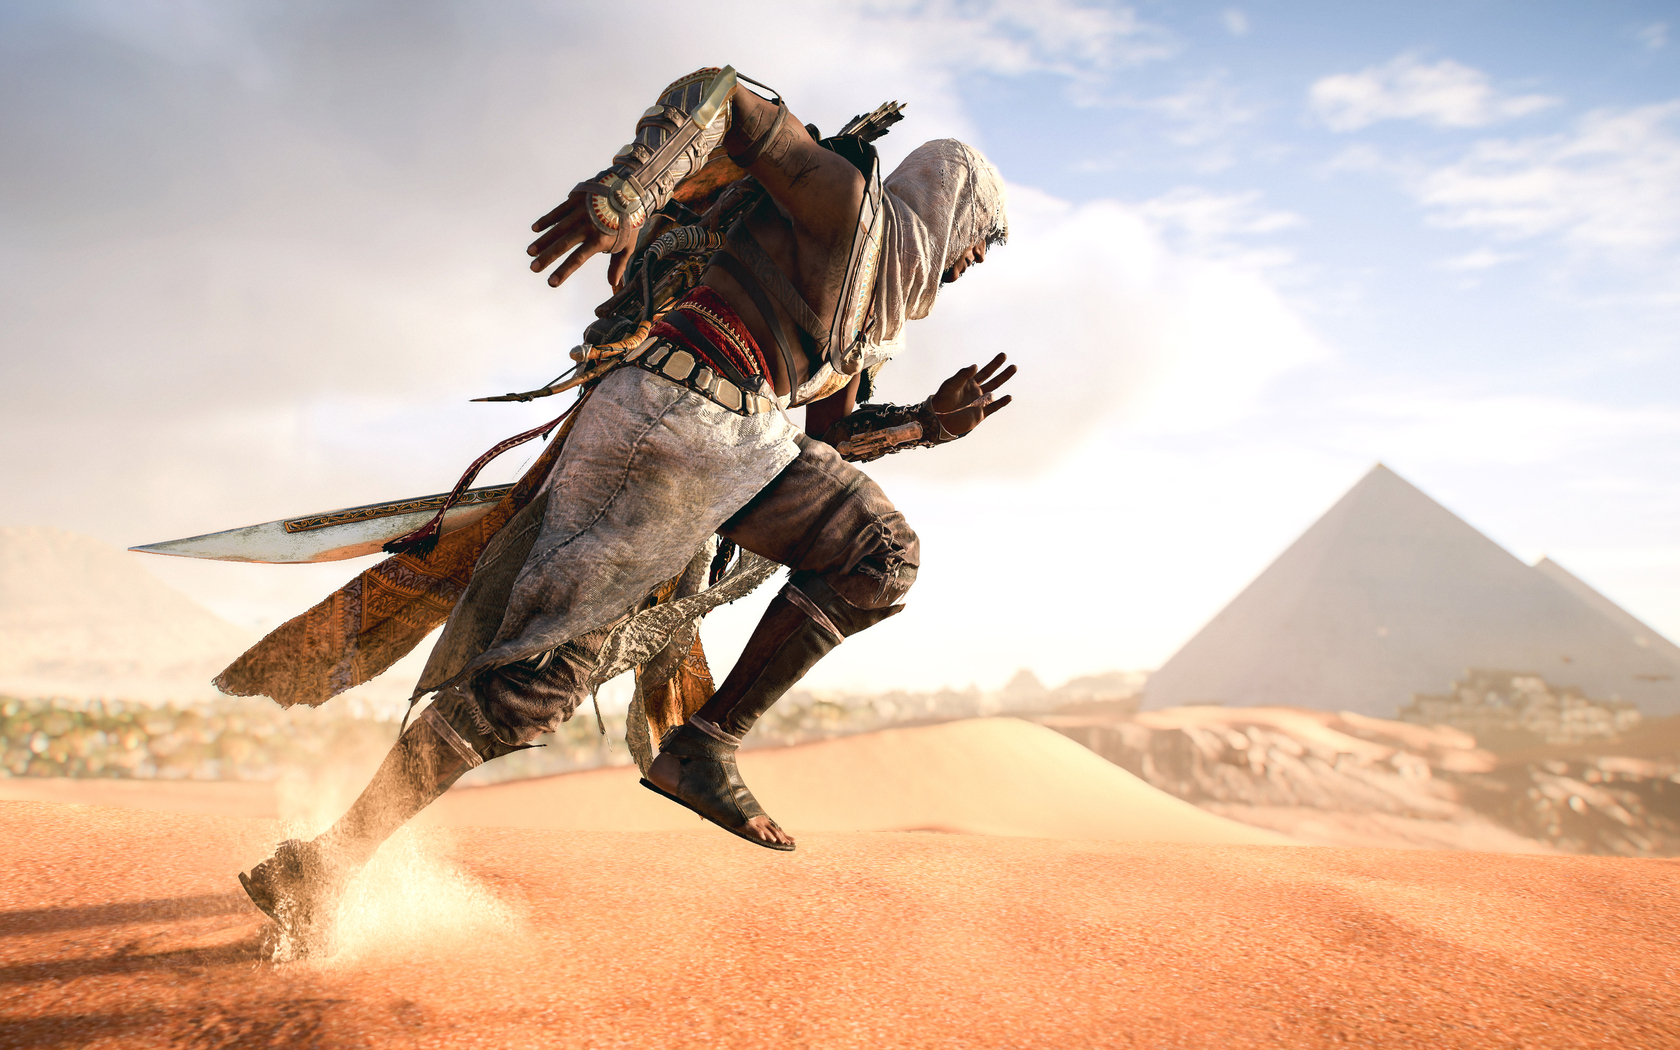 1680x1050 Assassins Creed Origins 4k 2018 1680x1050